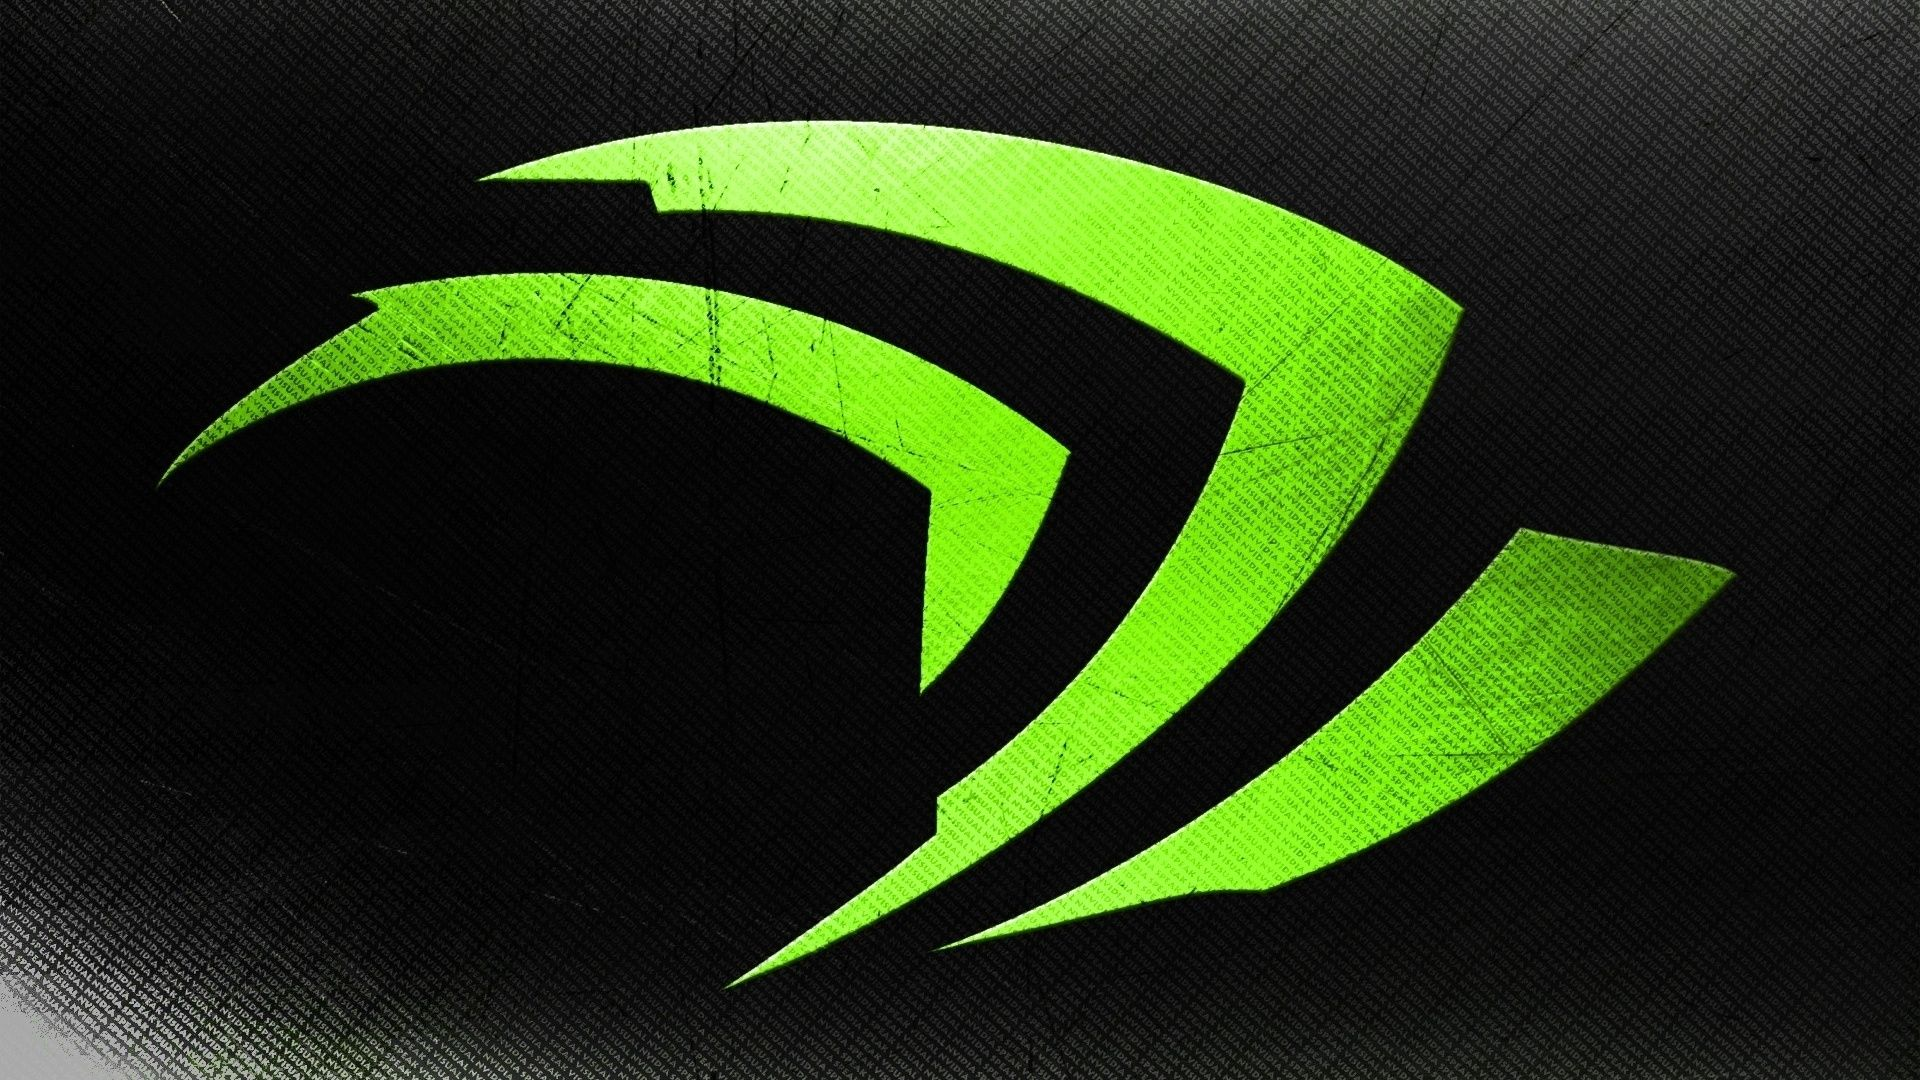 NVIDIA Wallpaper 1920x1080 HD